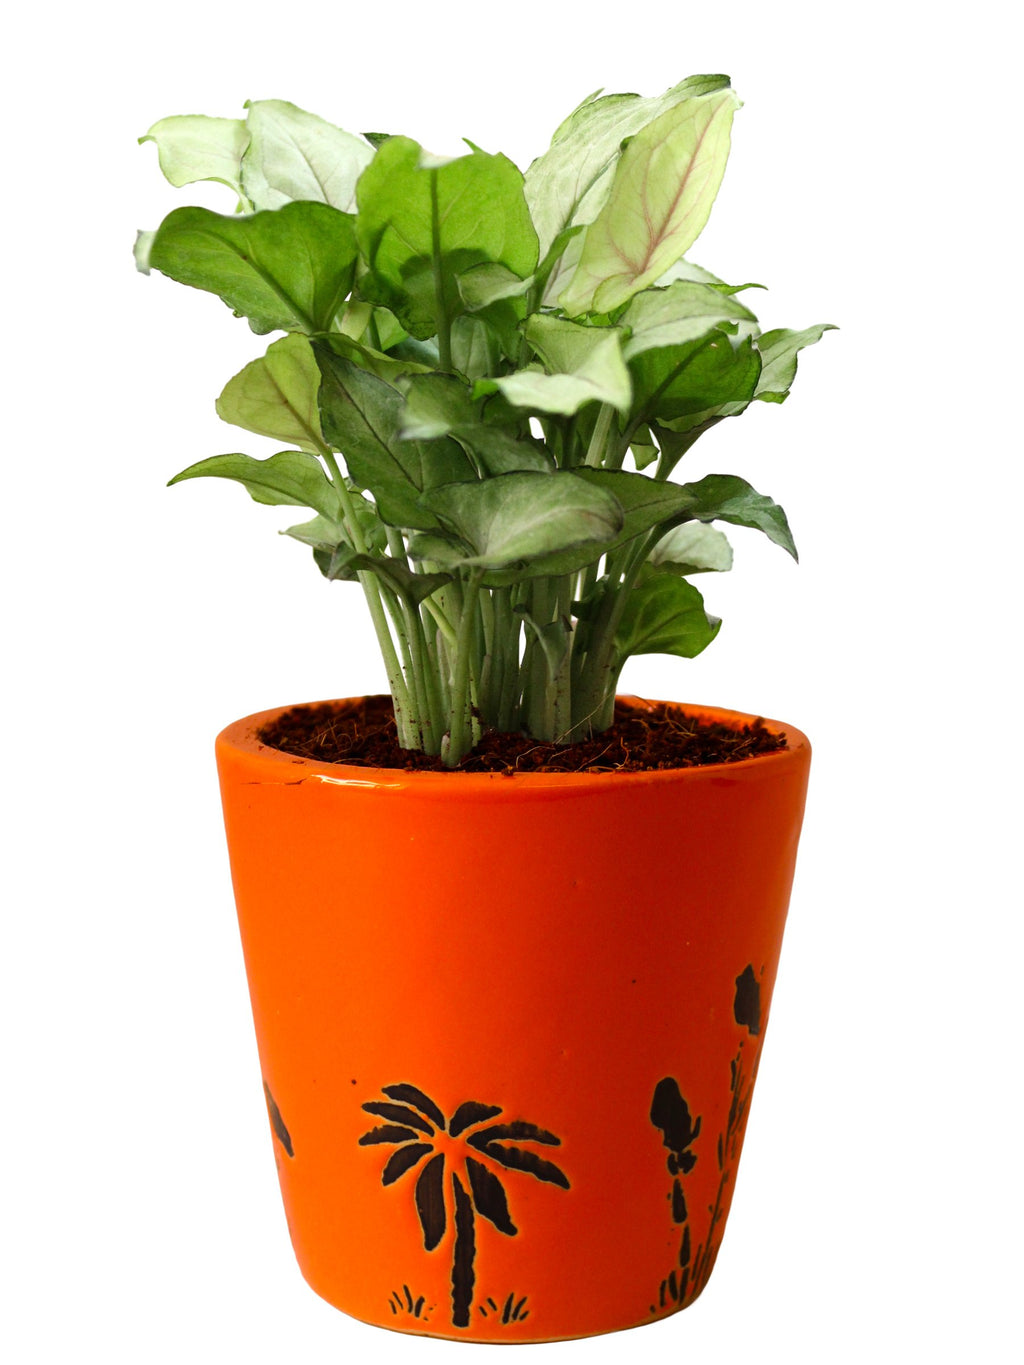 Rolling Nature Good Luck Air Purifying Live Green Syngonium Plant in Orange Bucket Aroez Ceramic Pot